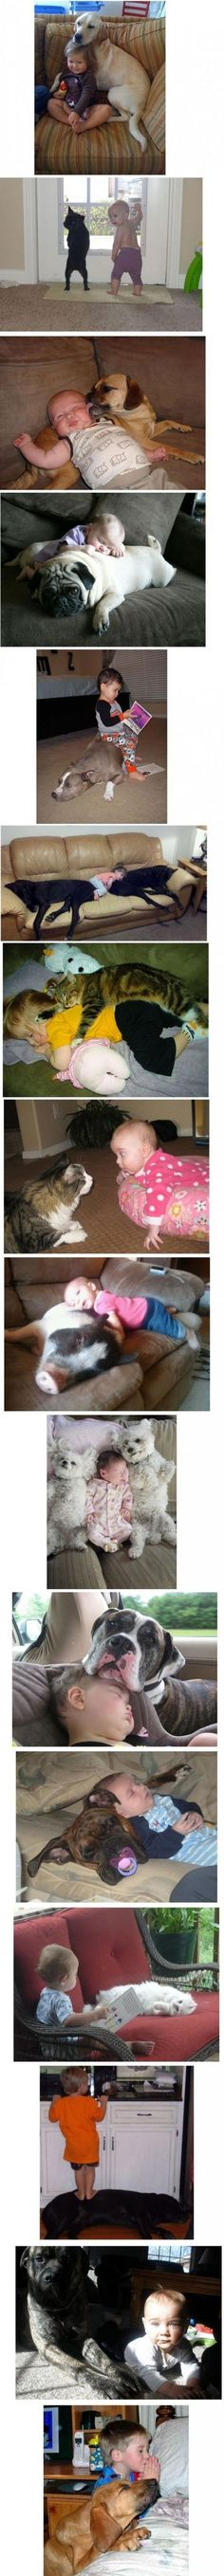 Why kids and their pets are such good friends